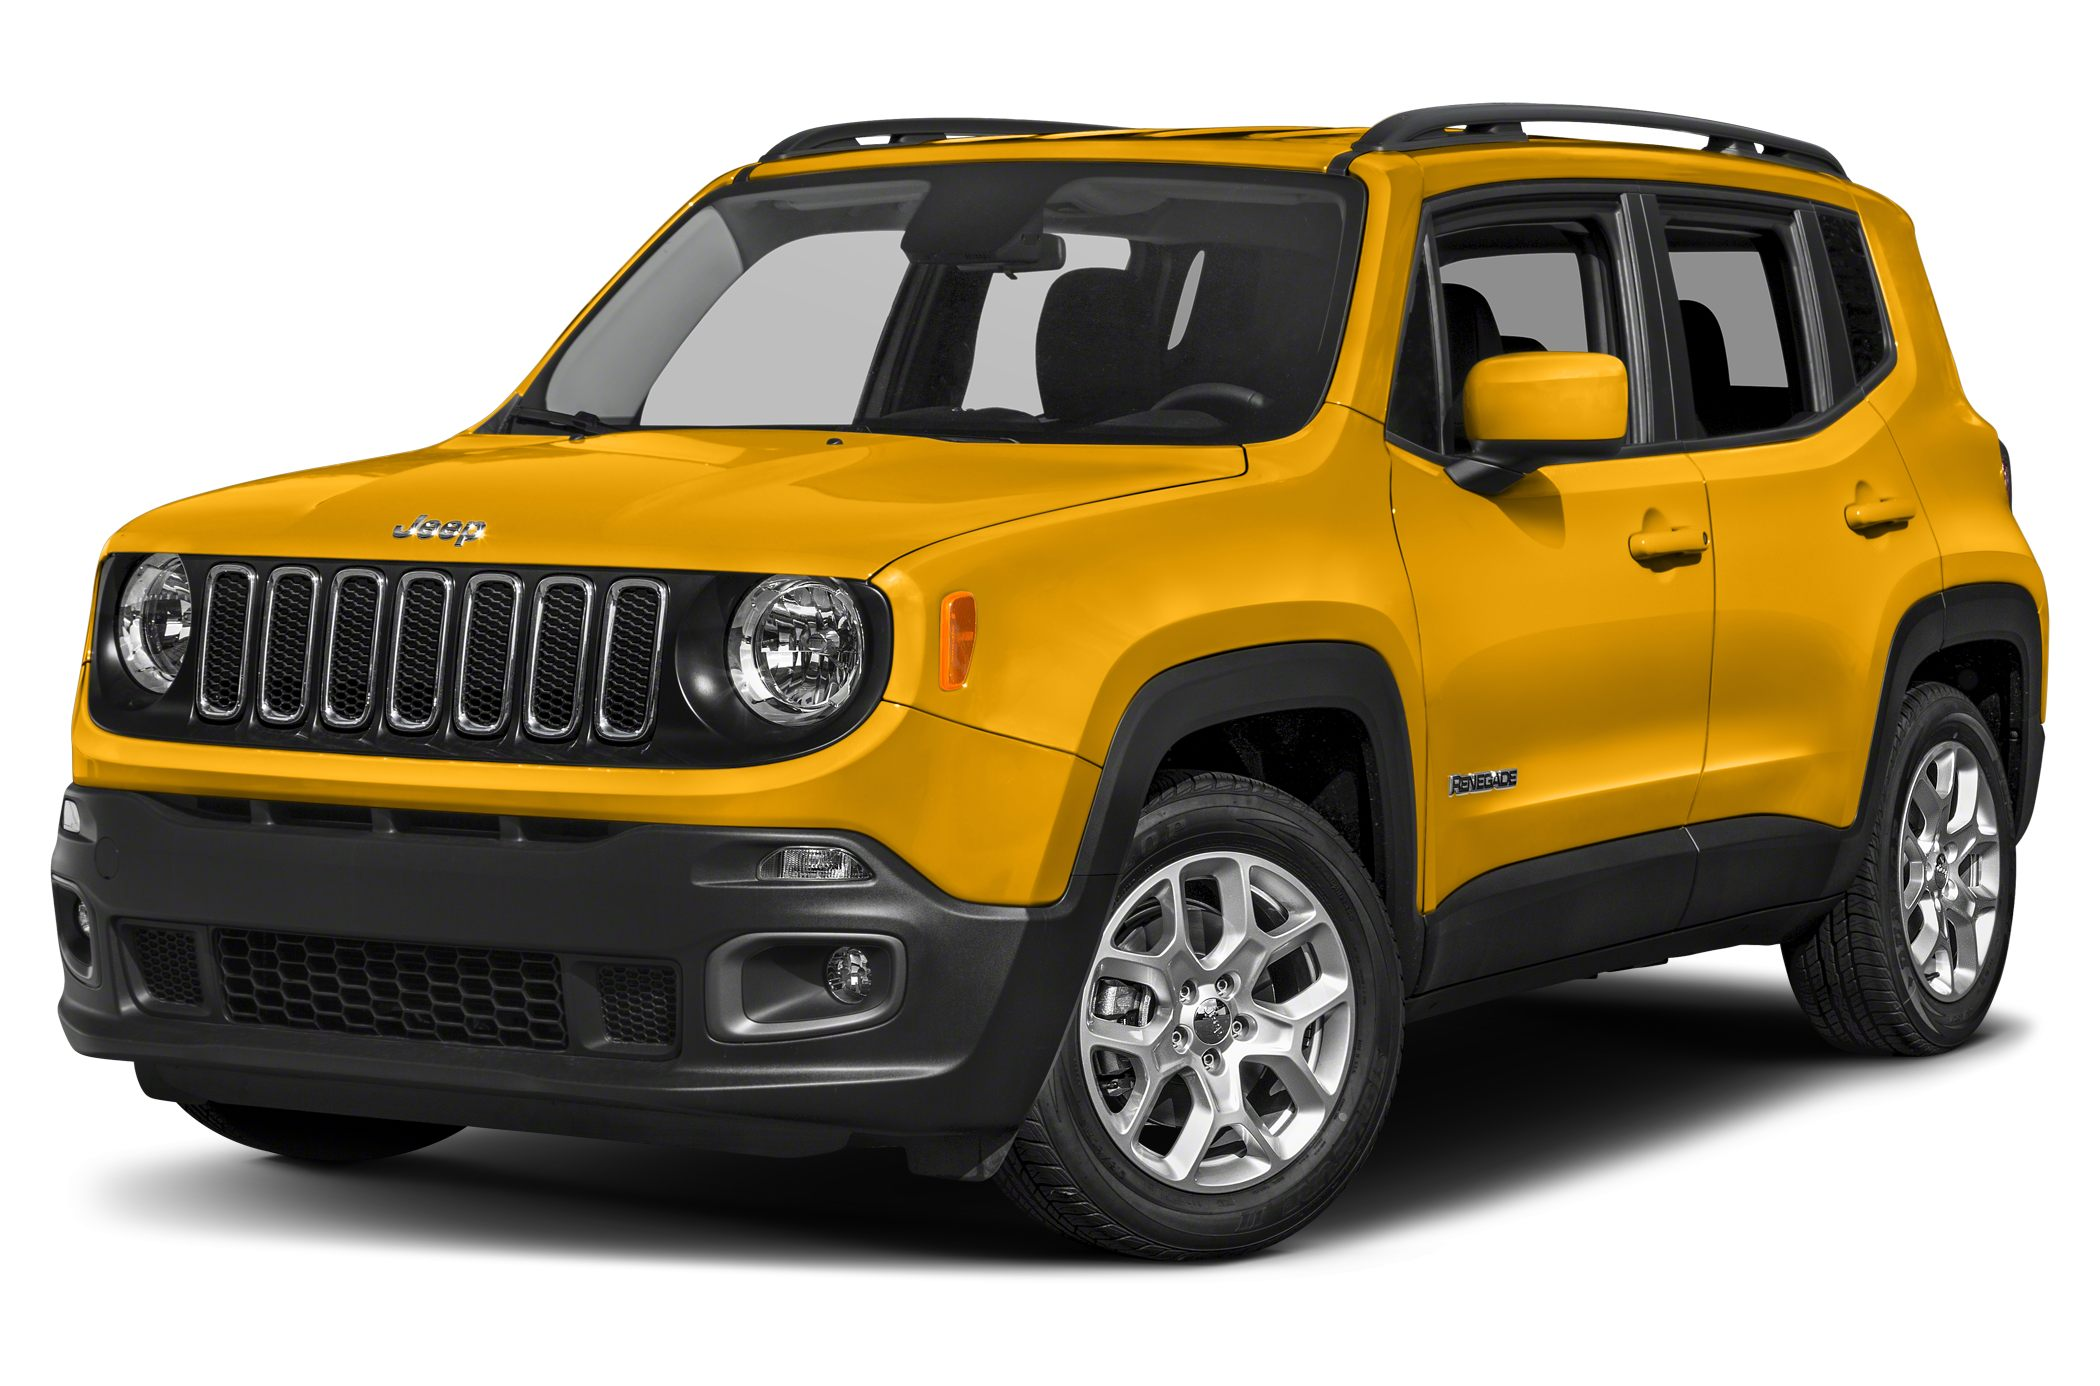 2015JeepRenegade